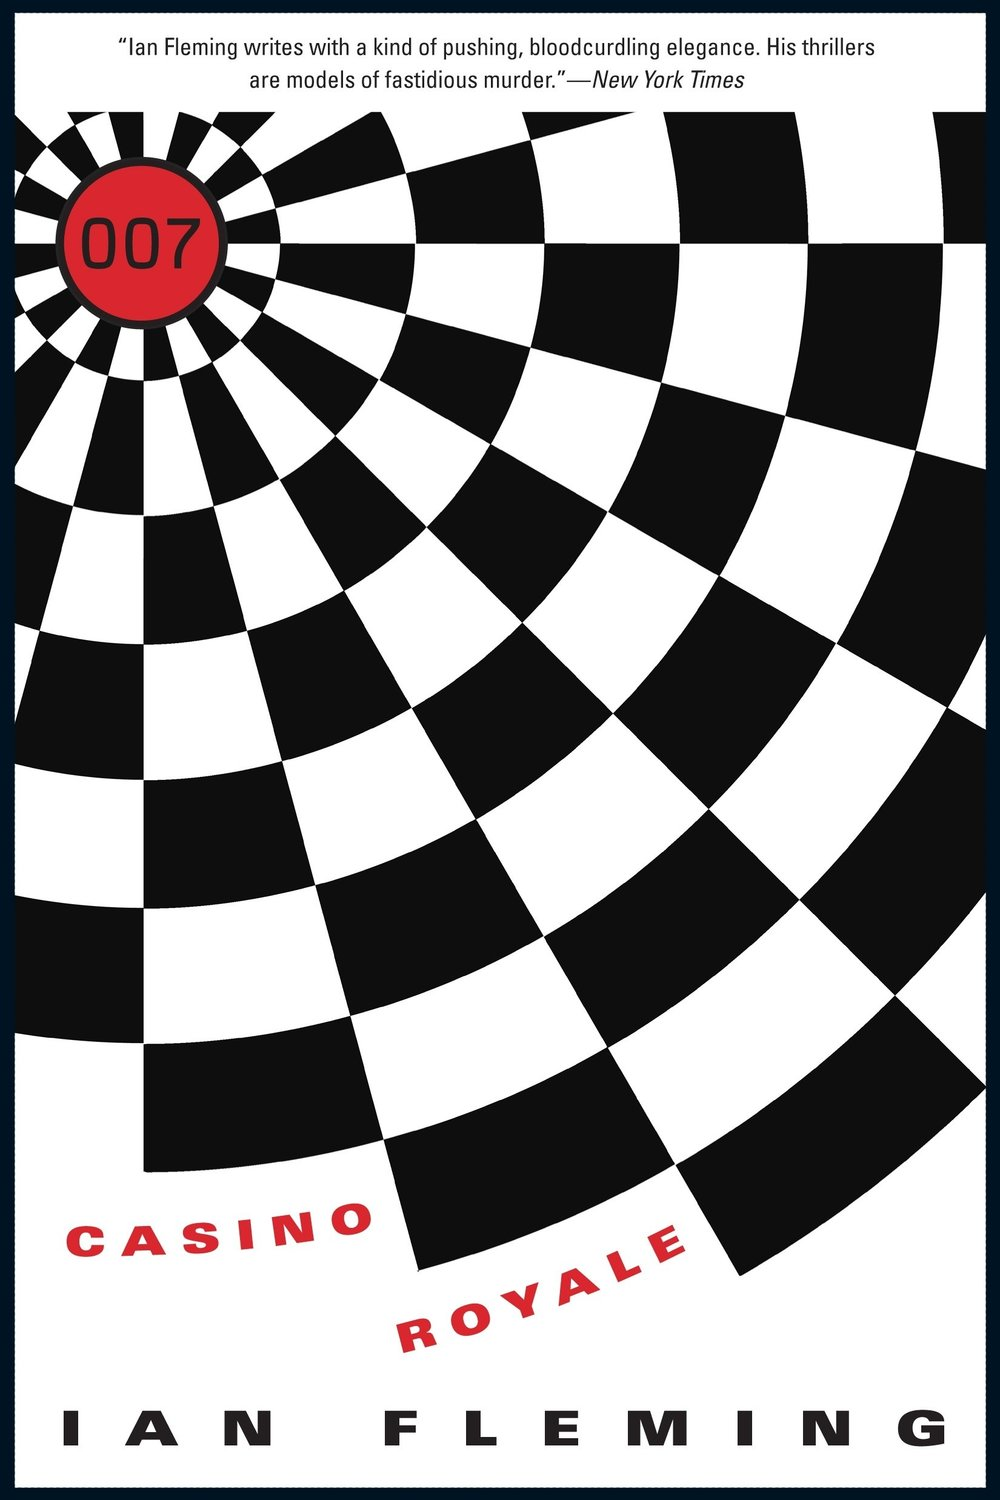 casino royale by ian fleming.jpg